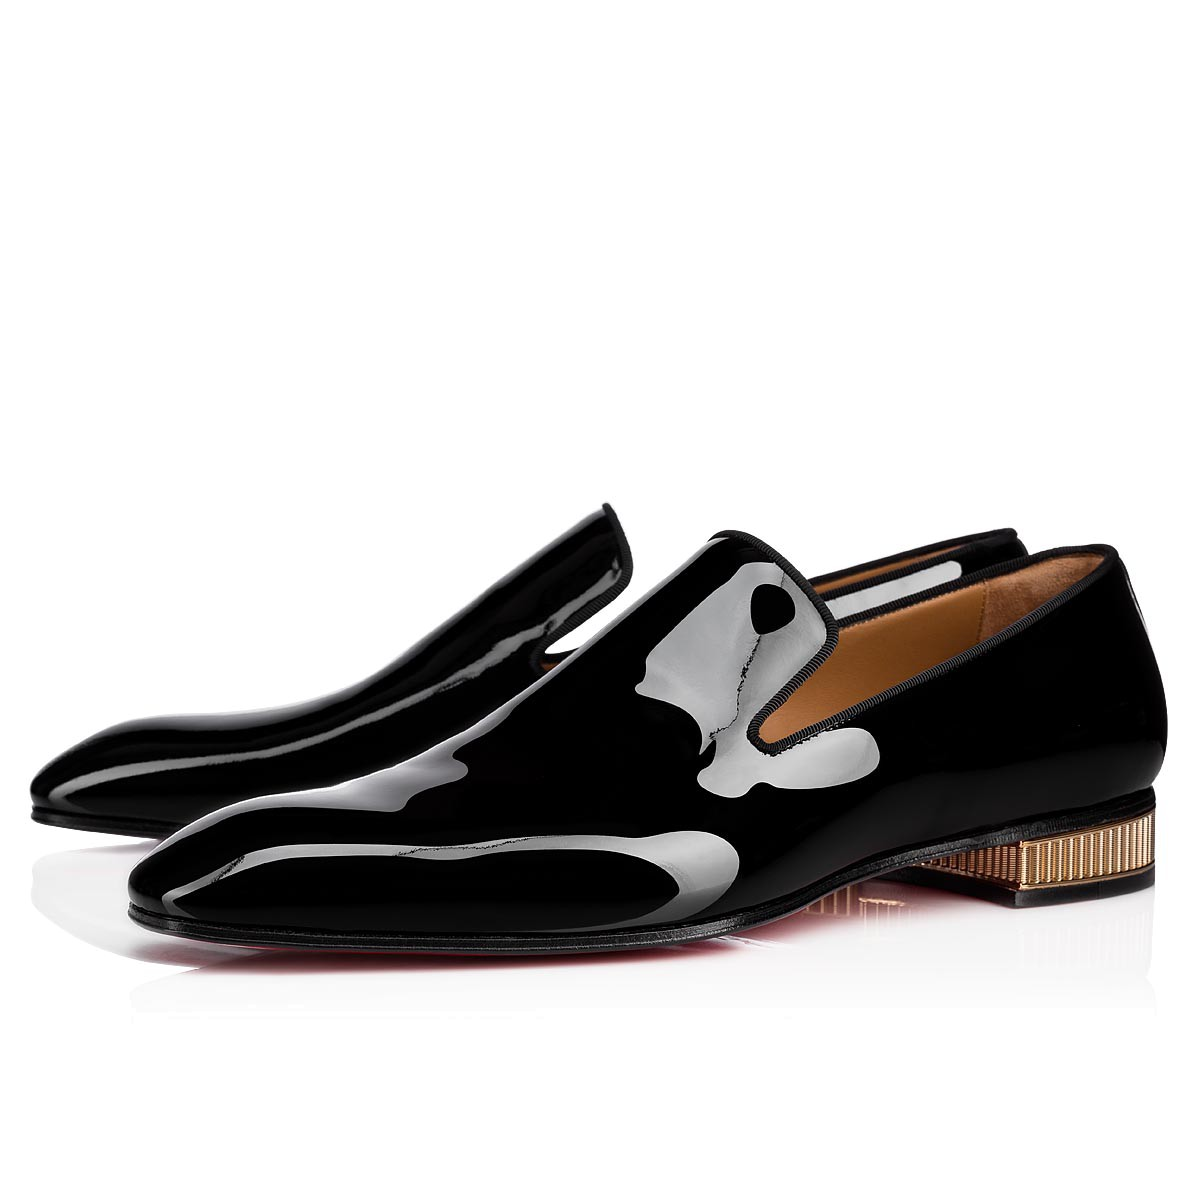 Classic shoes for gay grooms